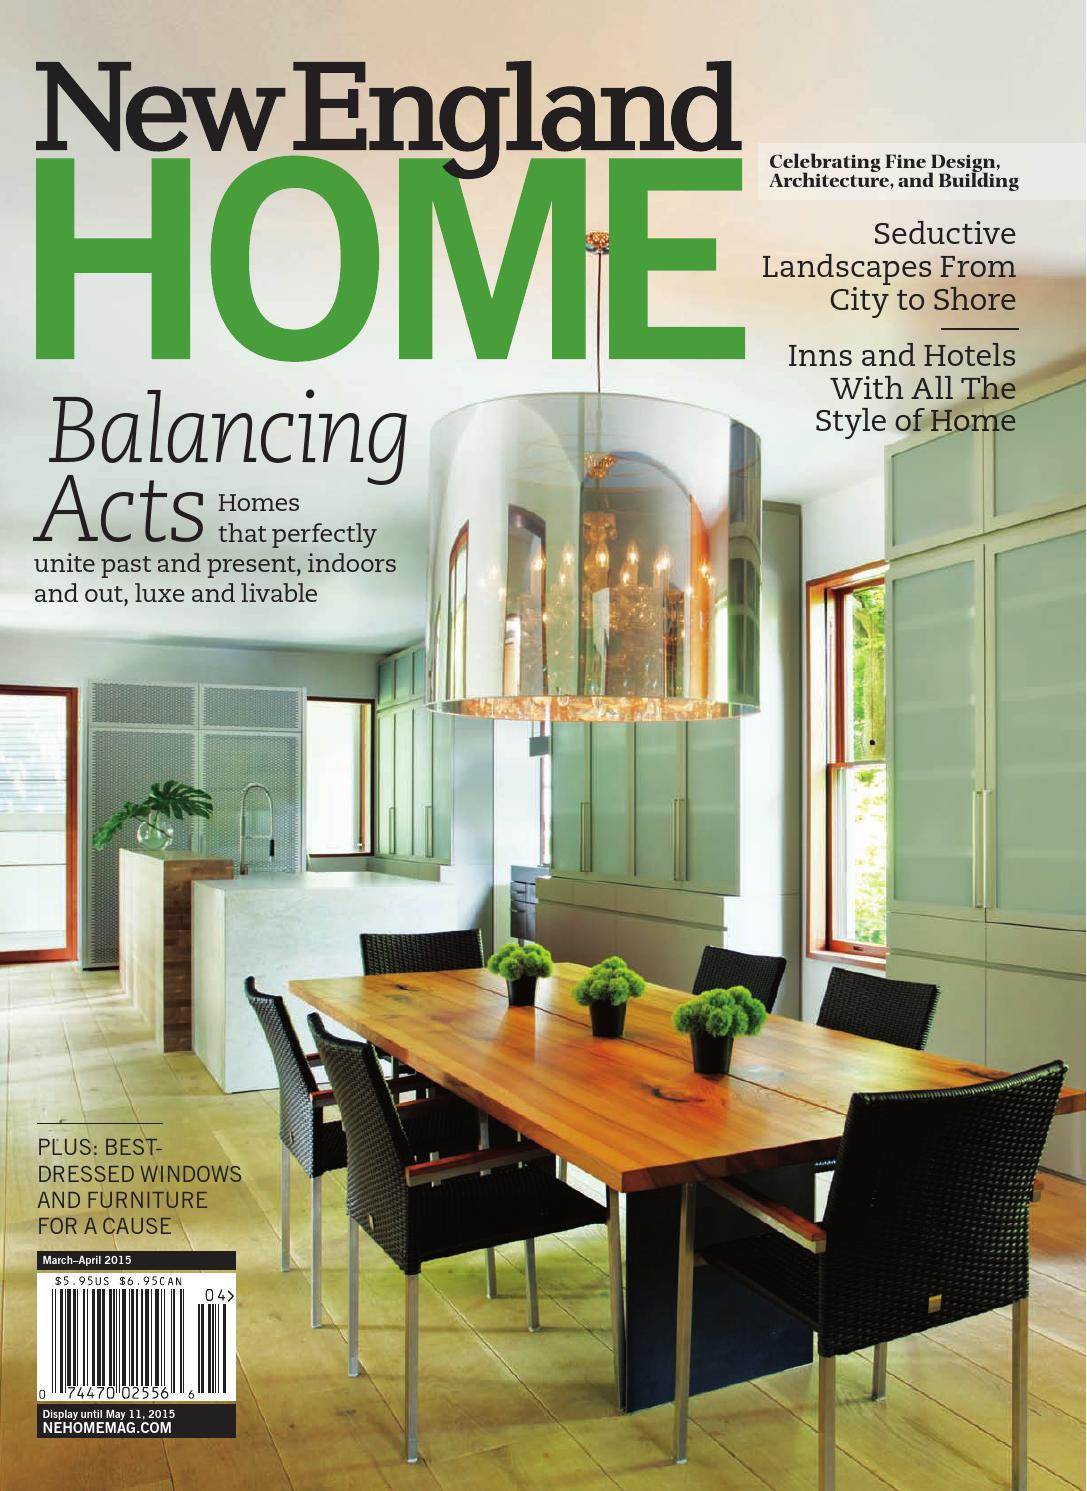 bruce oak marsh hardwood flooring of new england home march april 2015 by new england home magazine llc pertaining to new england home march april 2015 by new england home magazine llc issuu